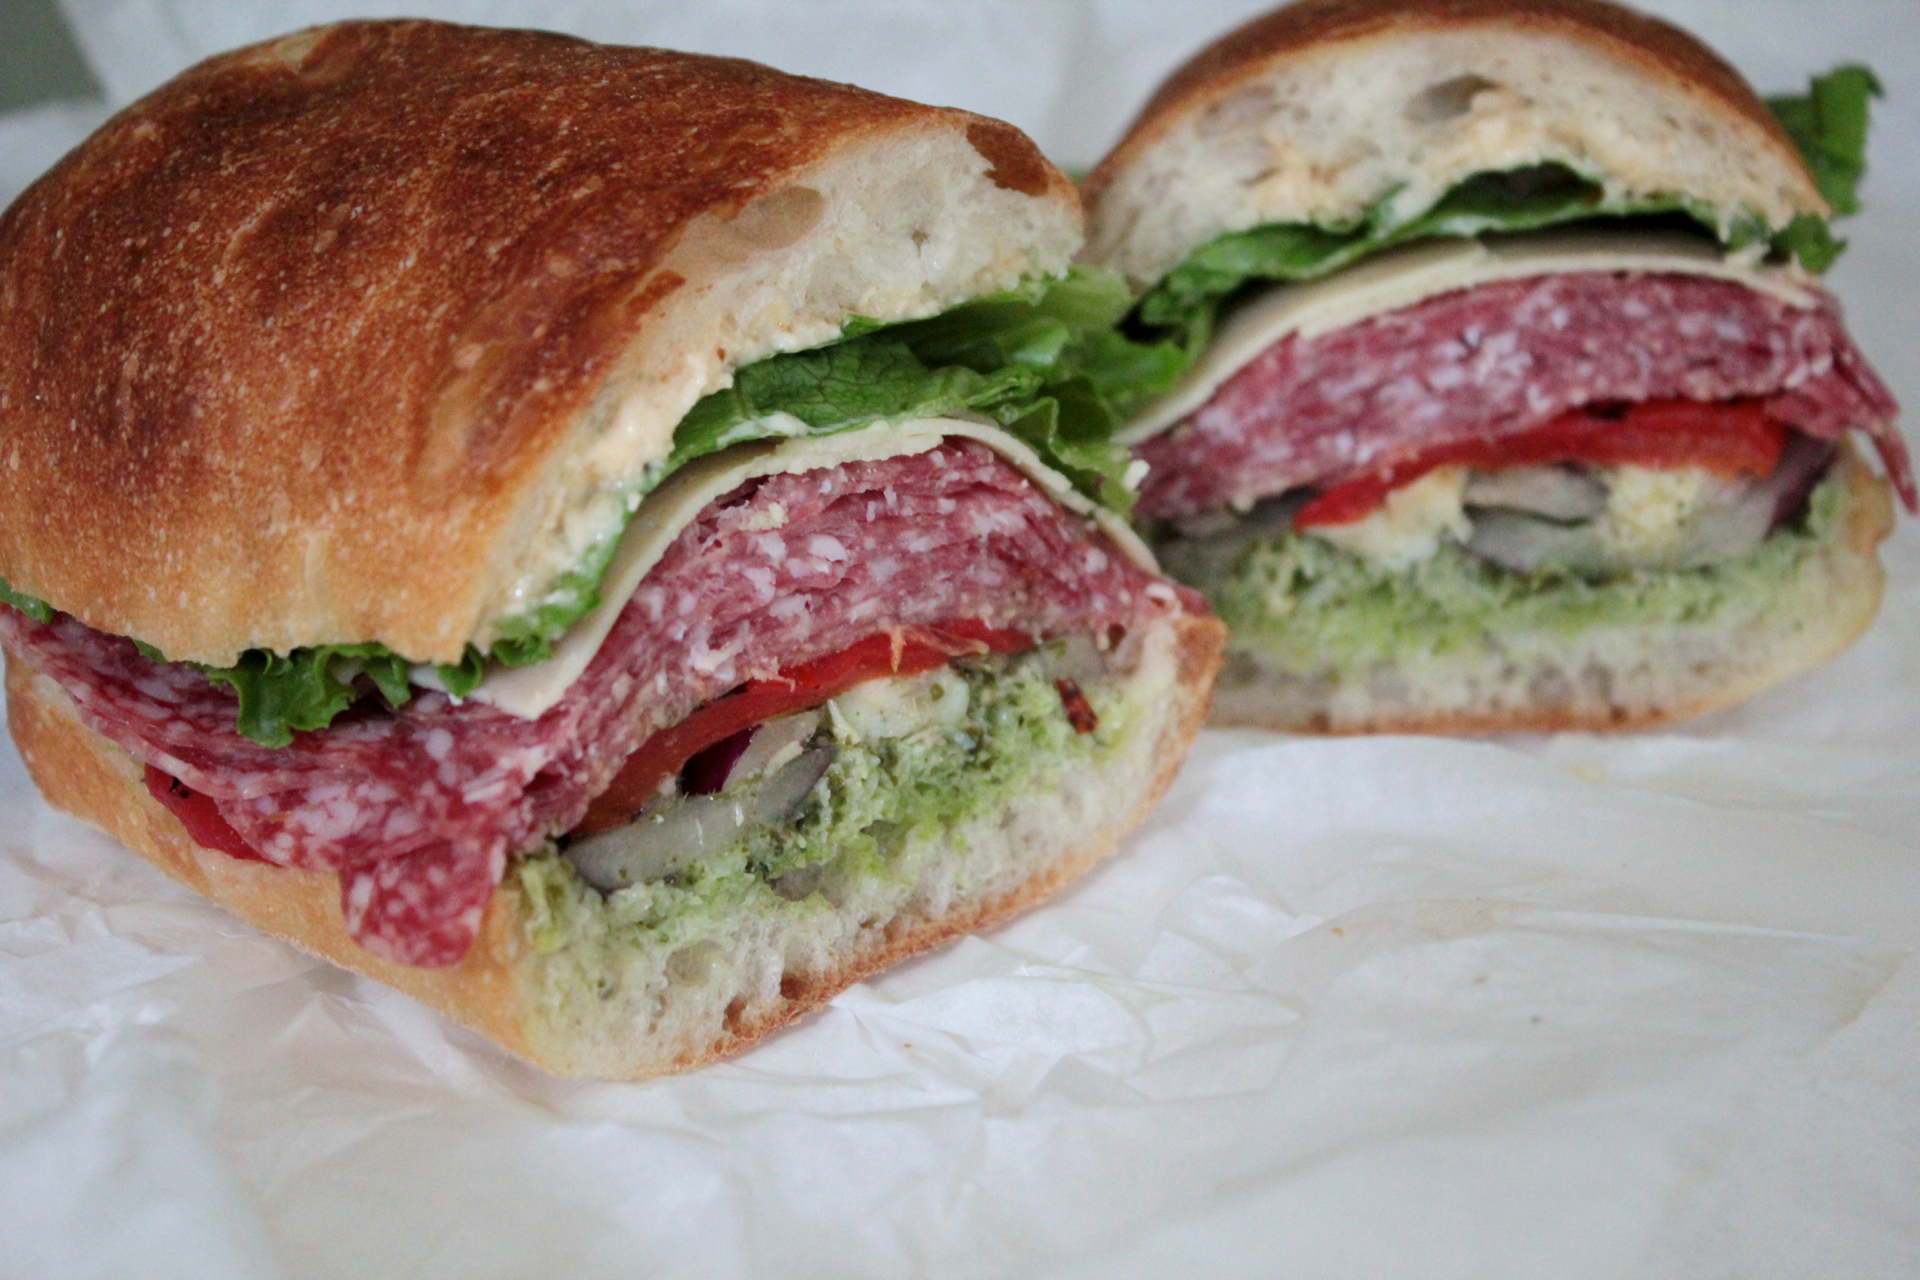 The Woodside Grand Champion features salami, artichoke hearts, red onions, red bell peppers, asiago and pesto.